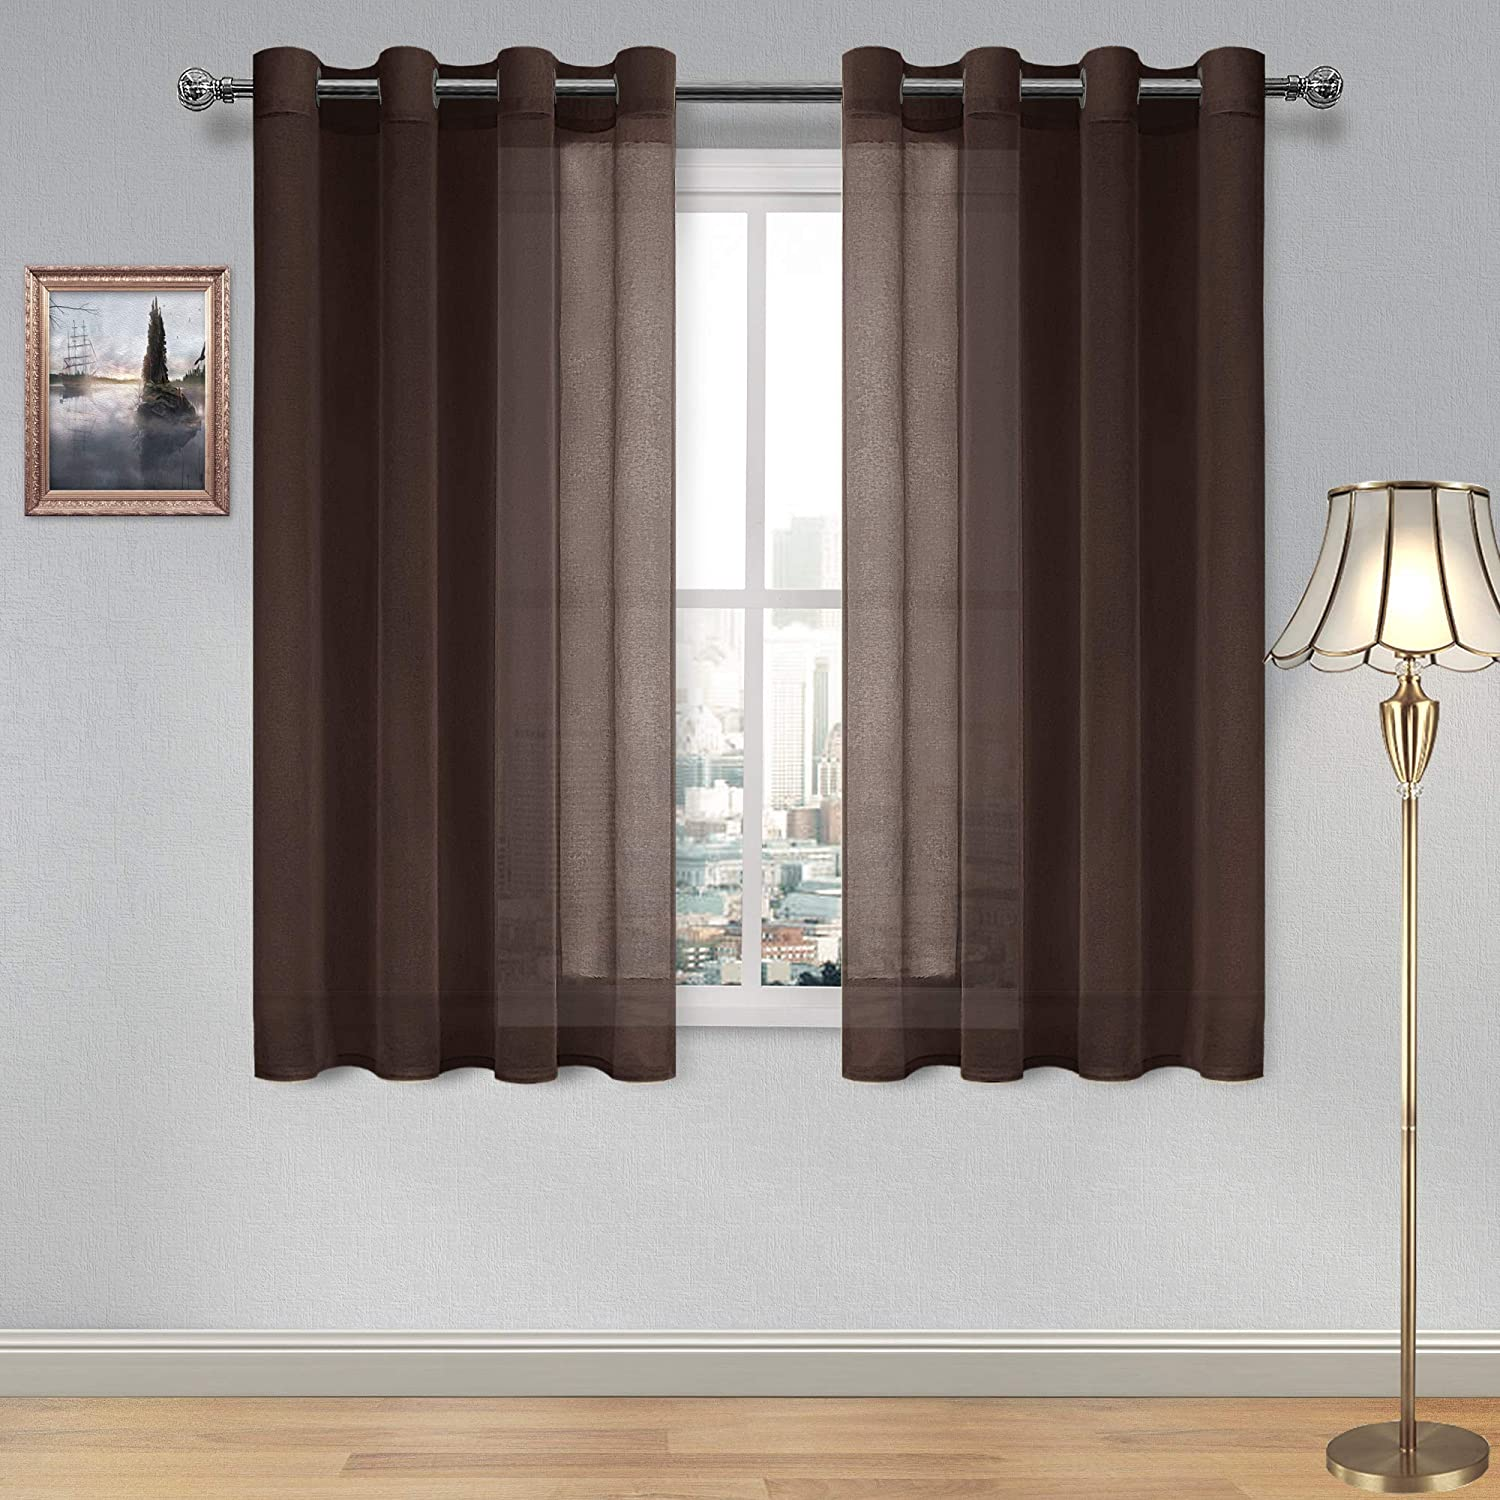 DWCN Brown Sheer Curtains Linen Look Semi Transparent Voile Grommet Curtains for Living Room Bedroom Drapes 52 x 45 inch Length, Set of 2 Panels